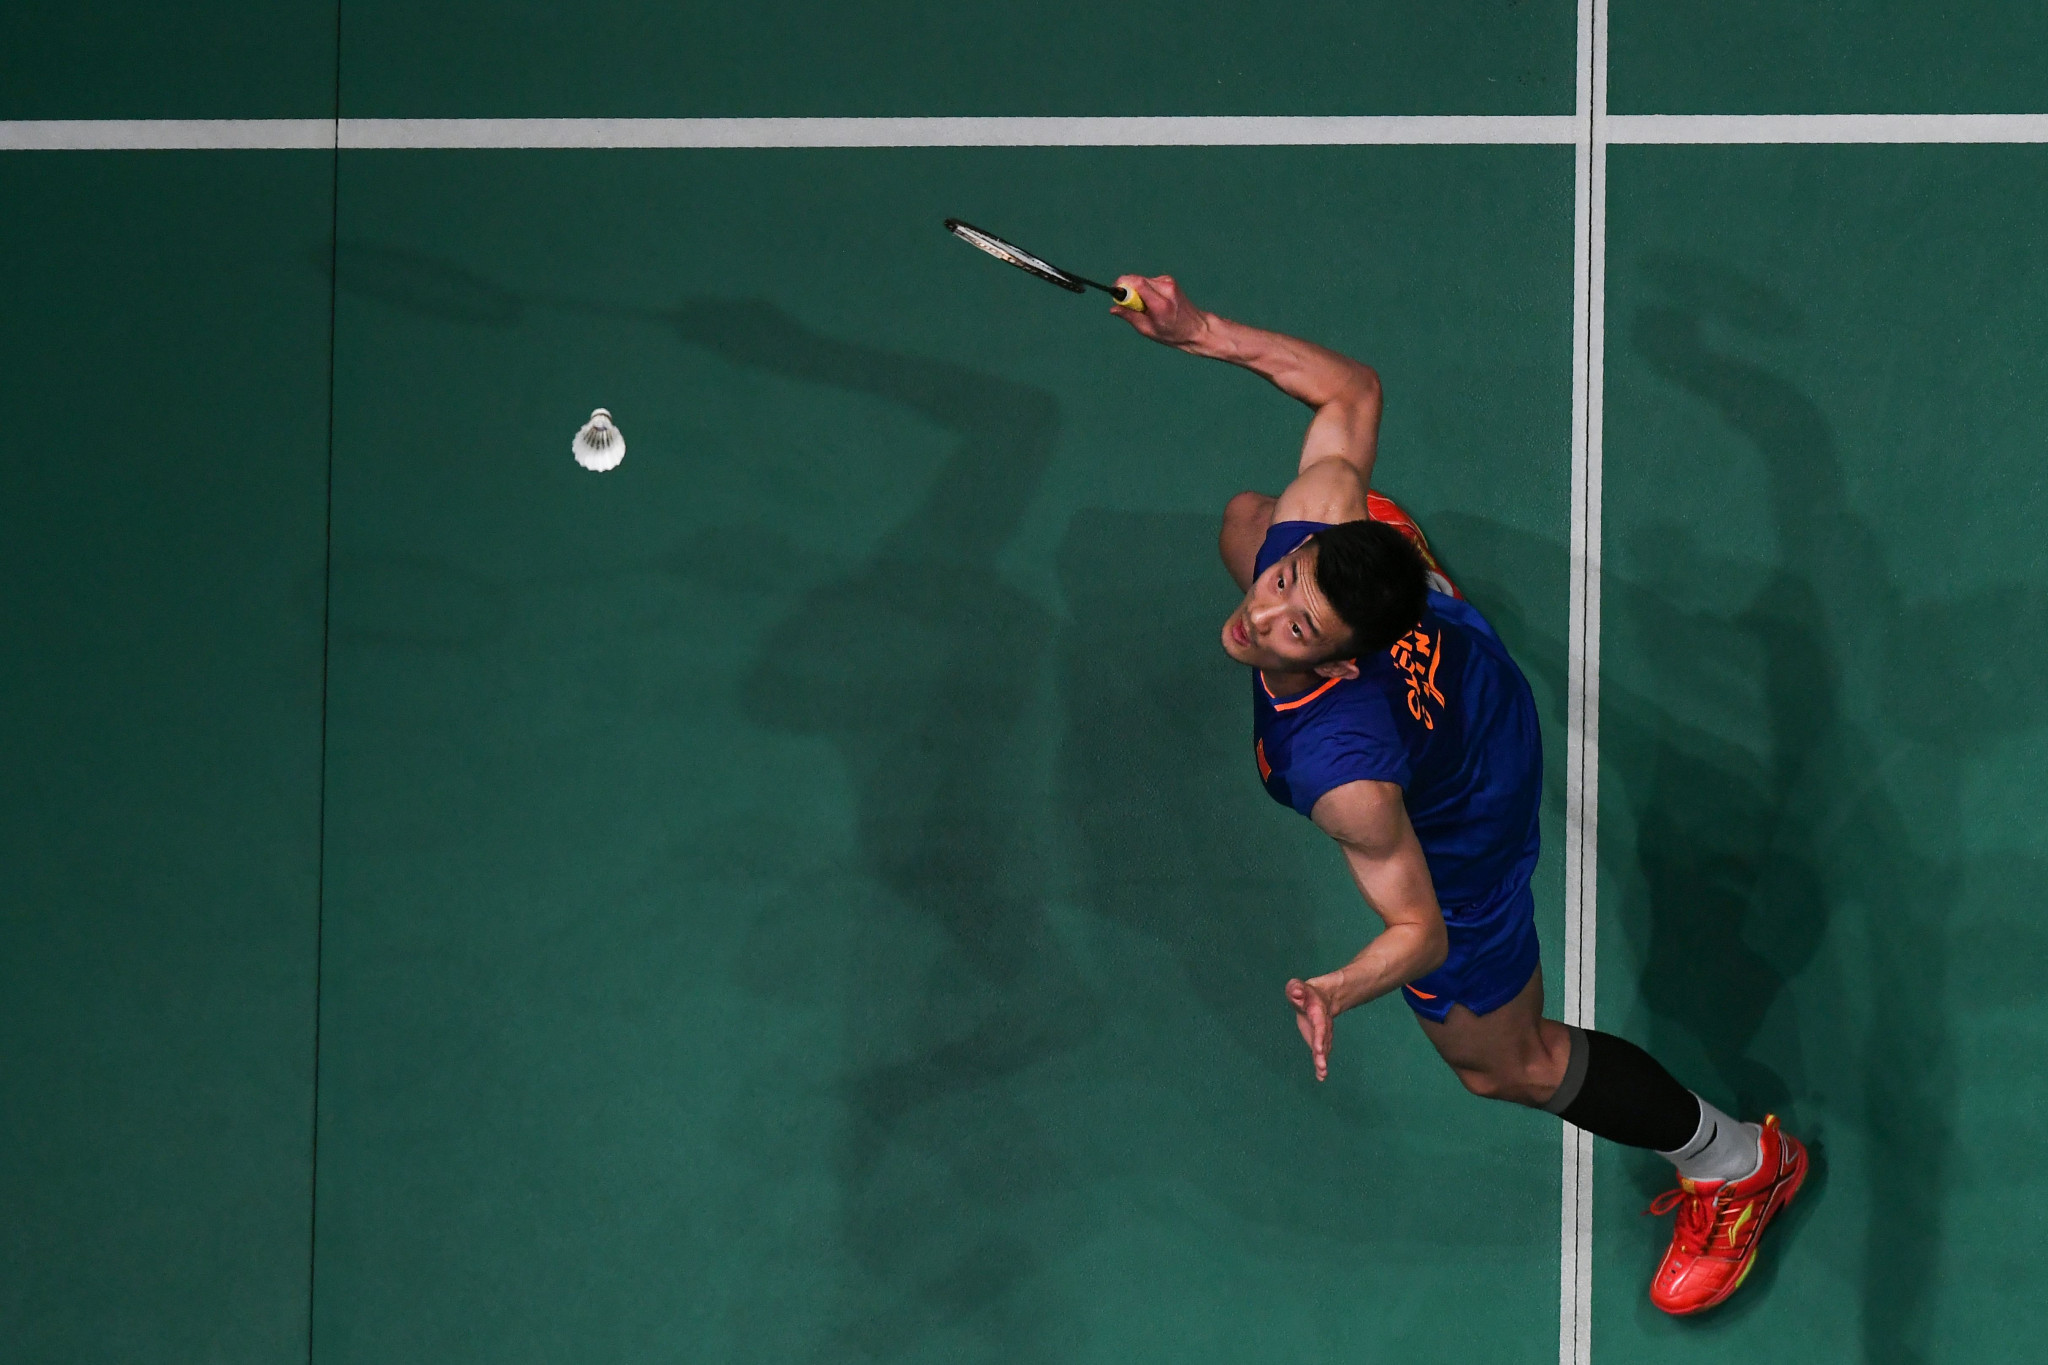 Olympic champion Chen Long secured a place in the men's singles final ©Getty Images